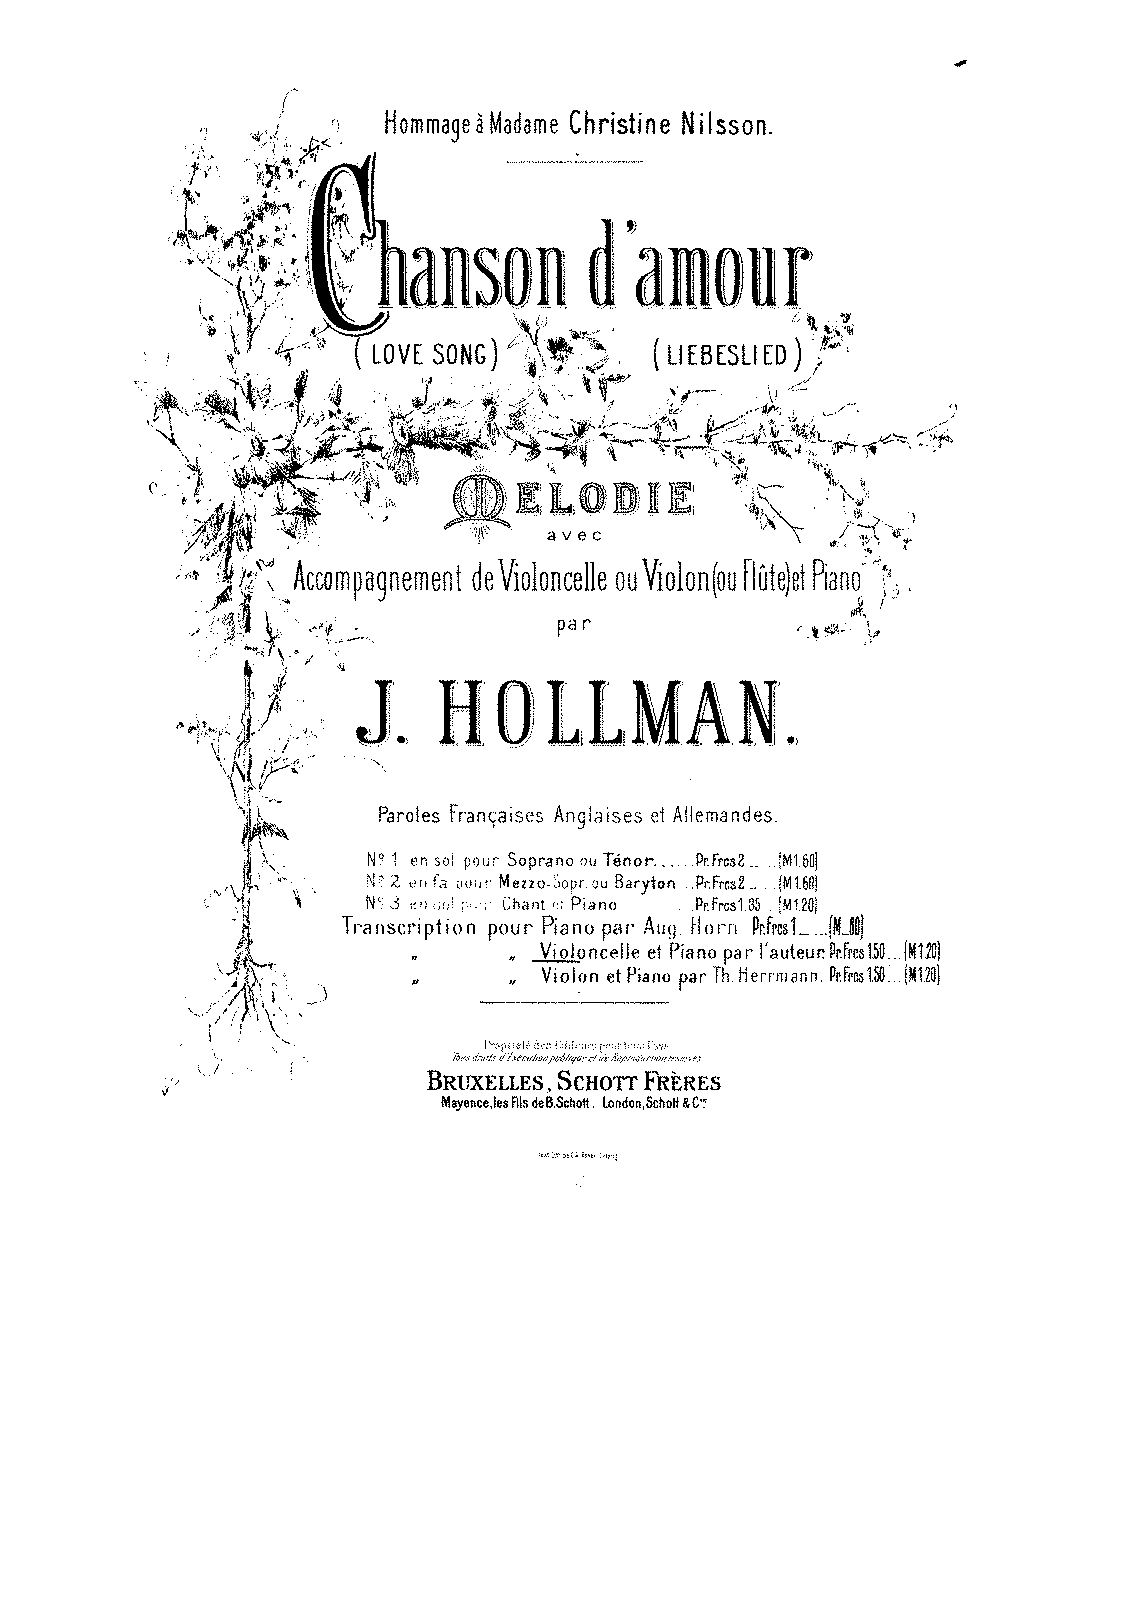 PMLP305608-Hollman - Chanson d'amour (Love song - Liebeslied) for cello and piano pno.pdf